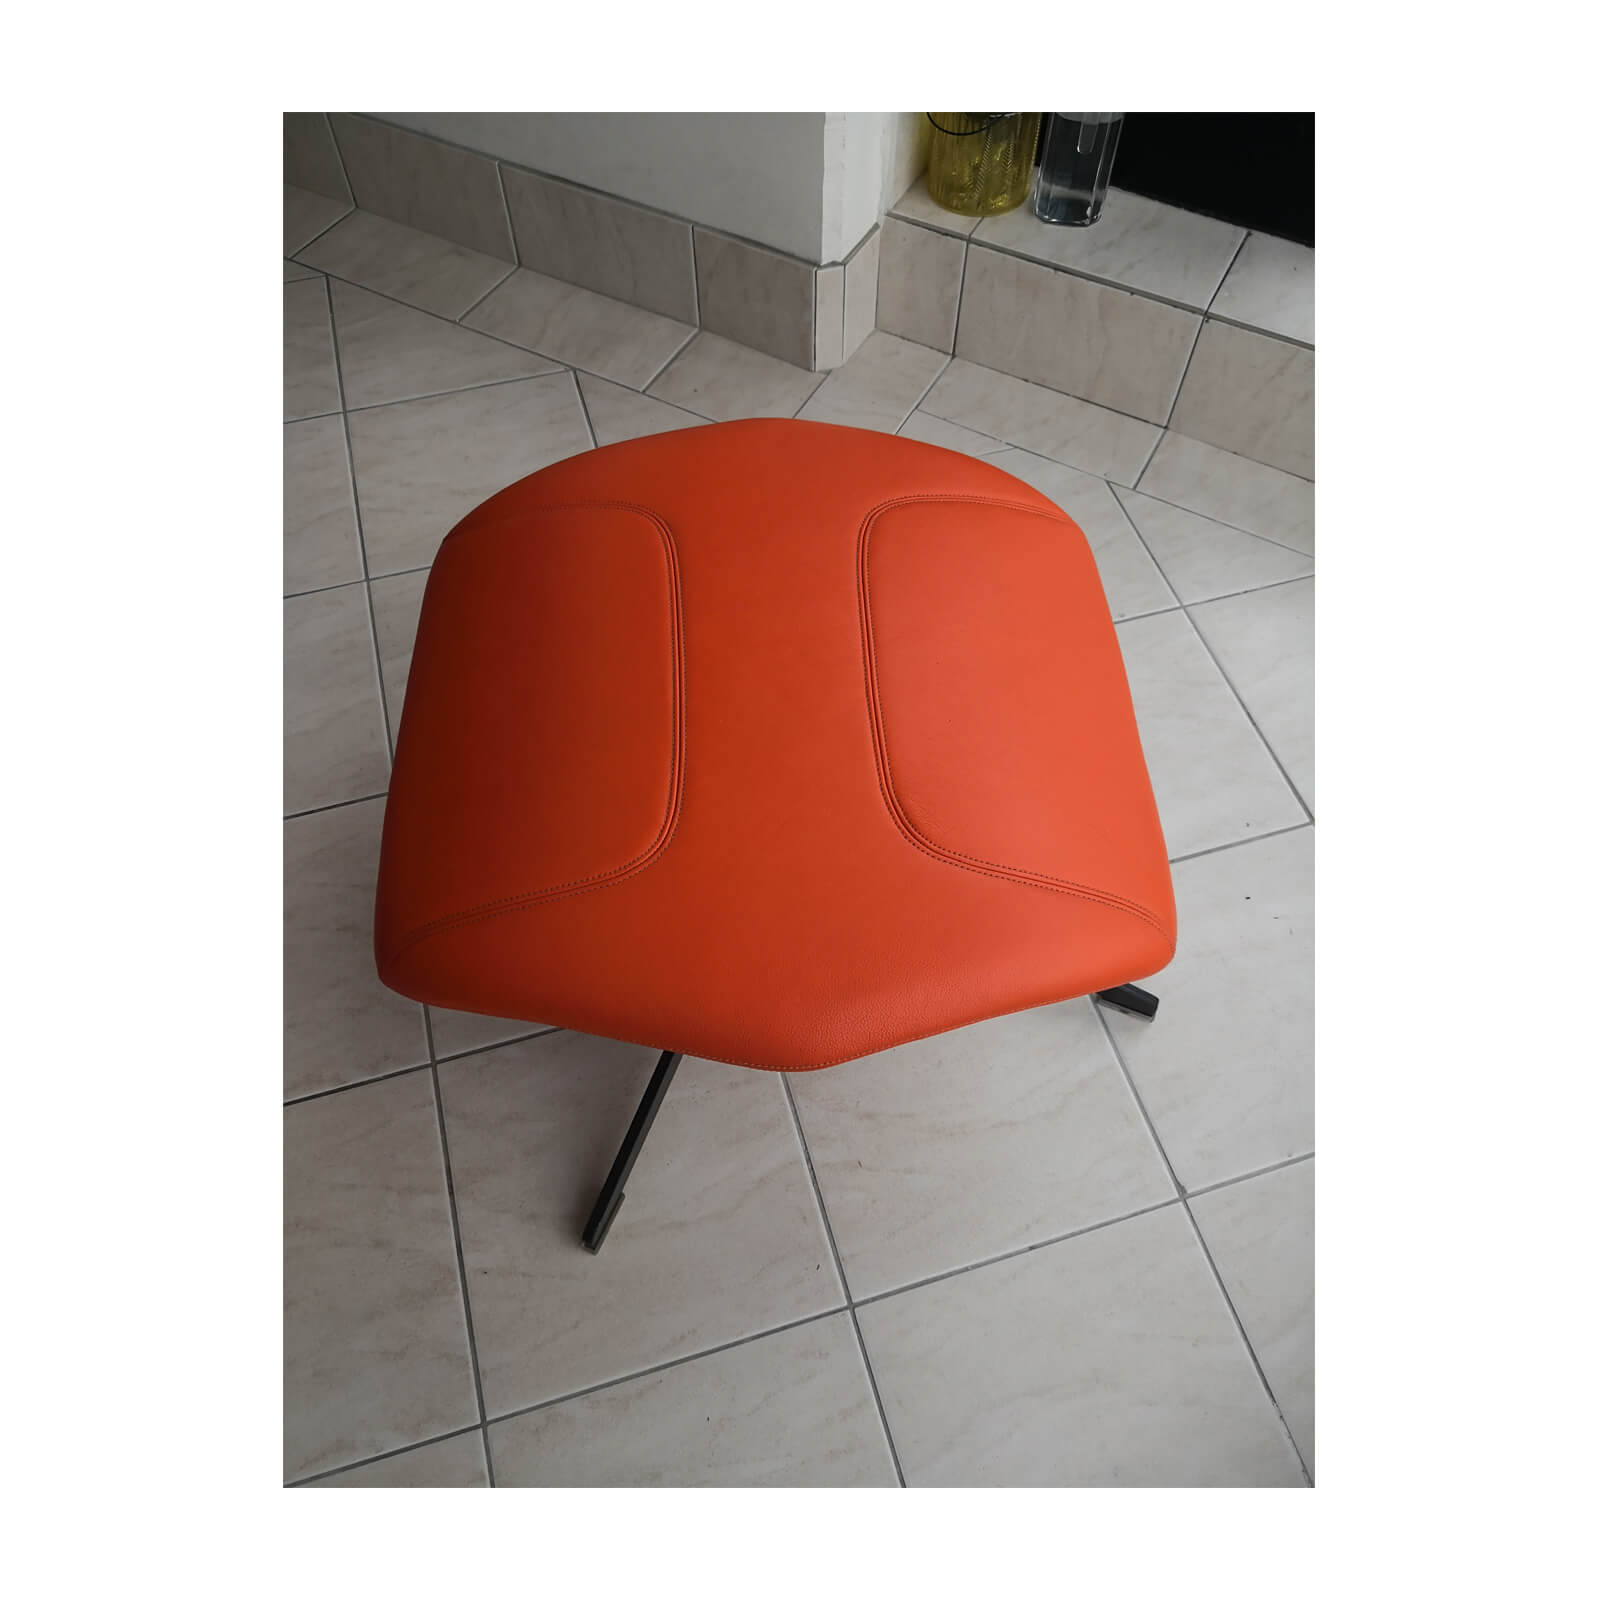 Two Design Lovers Moroso Take a Line for a Walk orange swivel chair with footstool 6